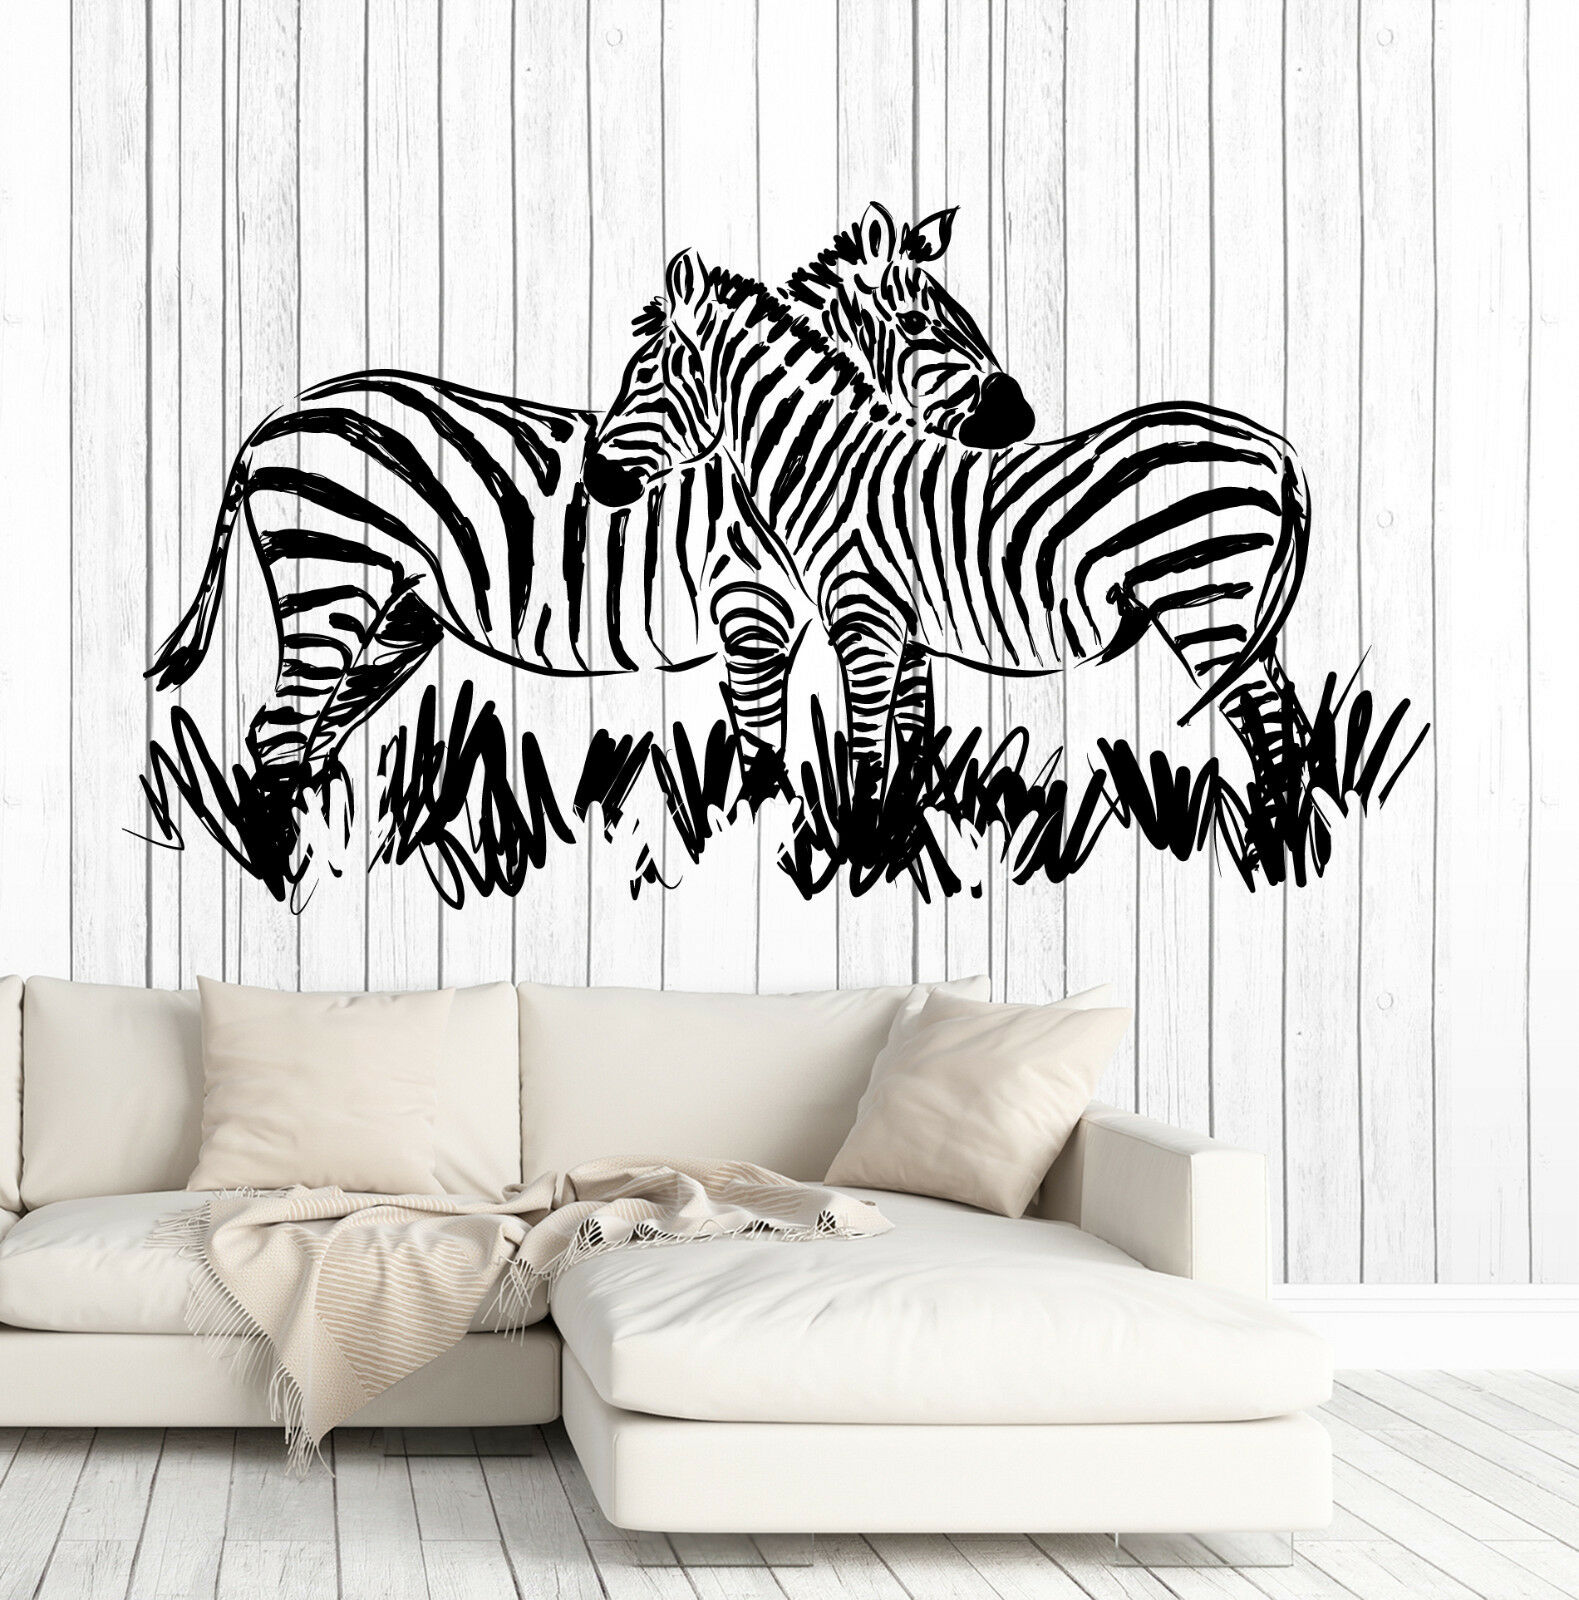 Wand Vinyl Decal African Landscape Wild Animals Pair of Zebras Decor z4607